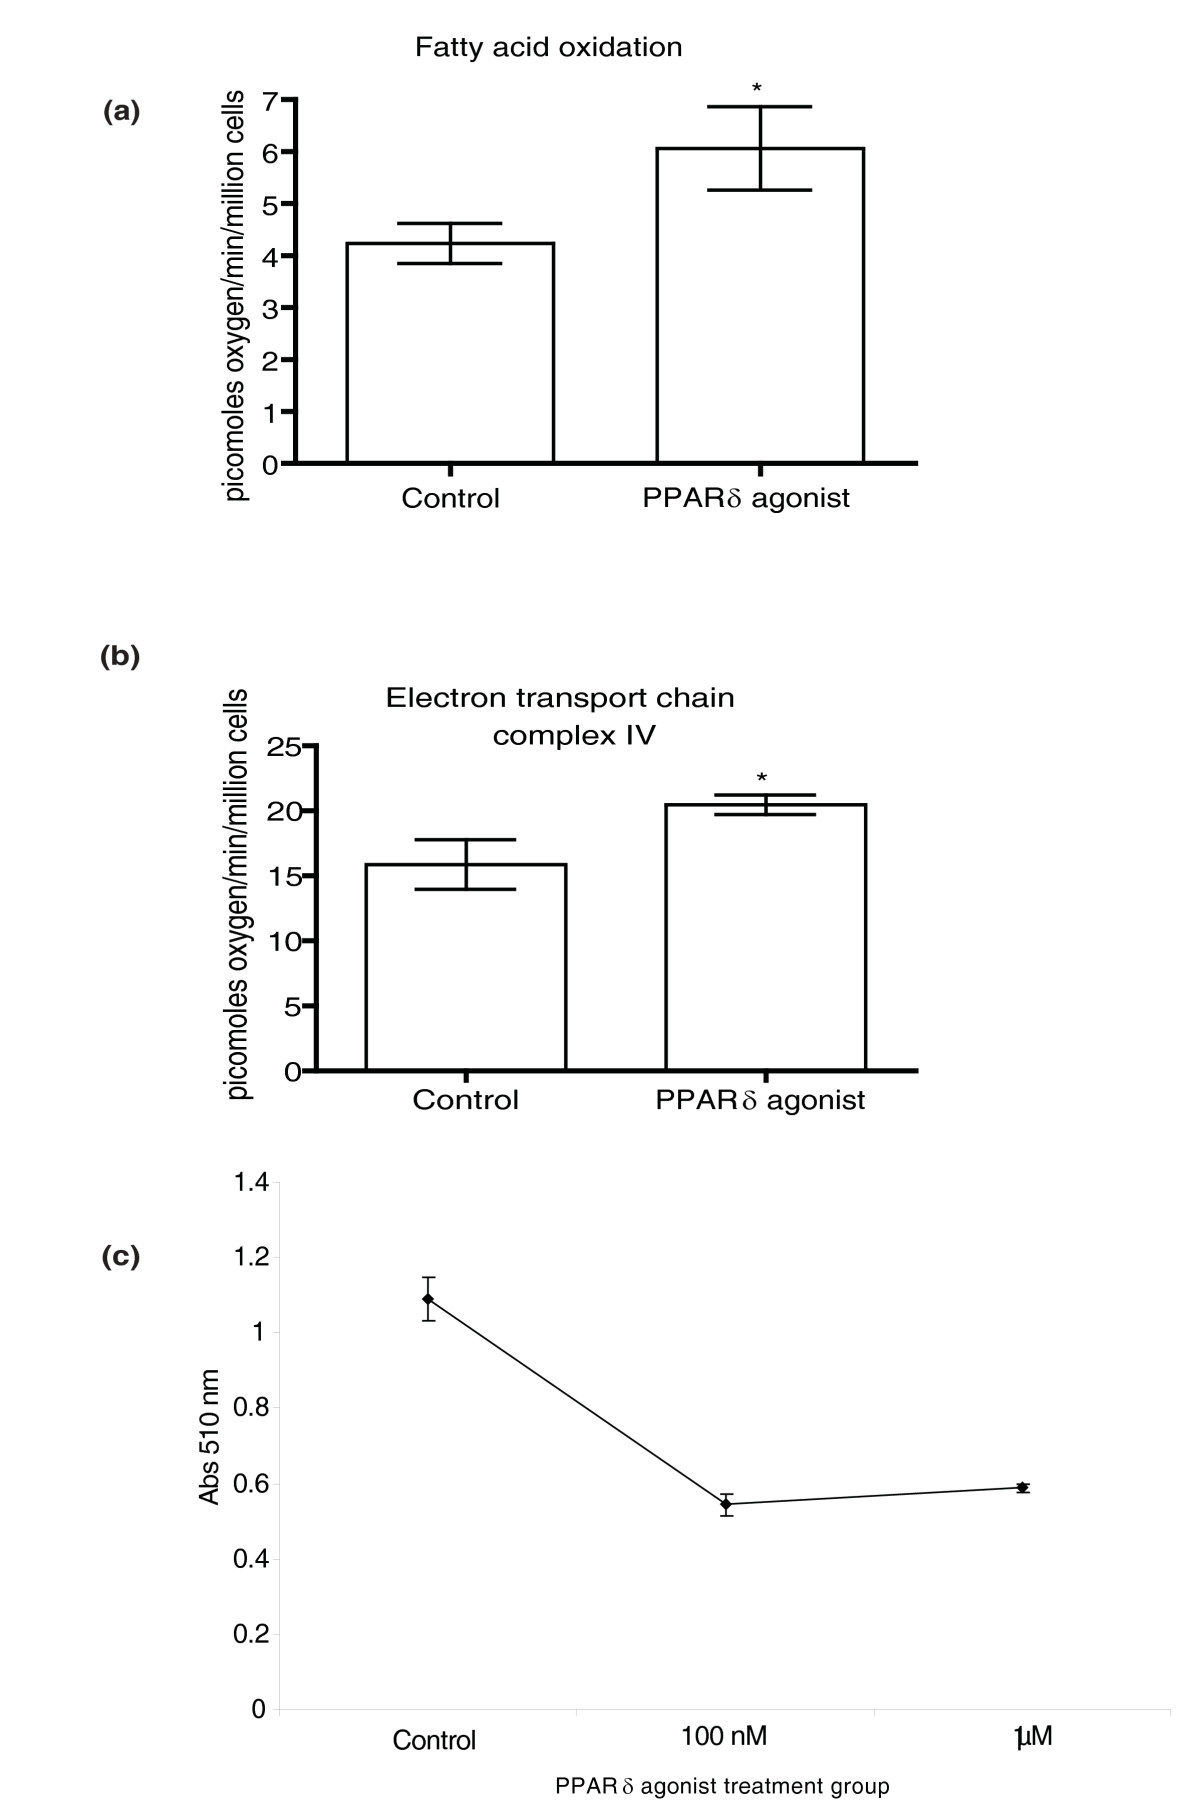 https://static-content.springer.com/image/art%3A10.1186%2Fgb-2011-12-8-r75/MediaObjects/13059_2011_Article_2668_Fig4_HTML.jpg